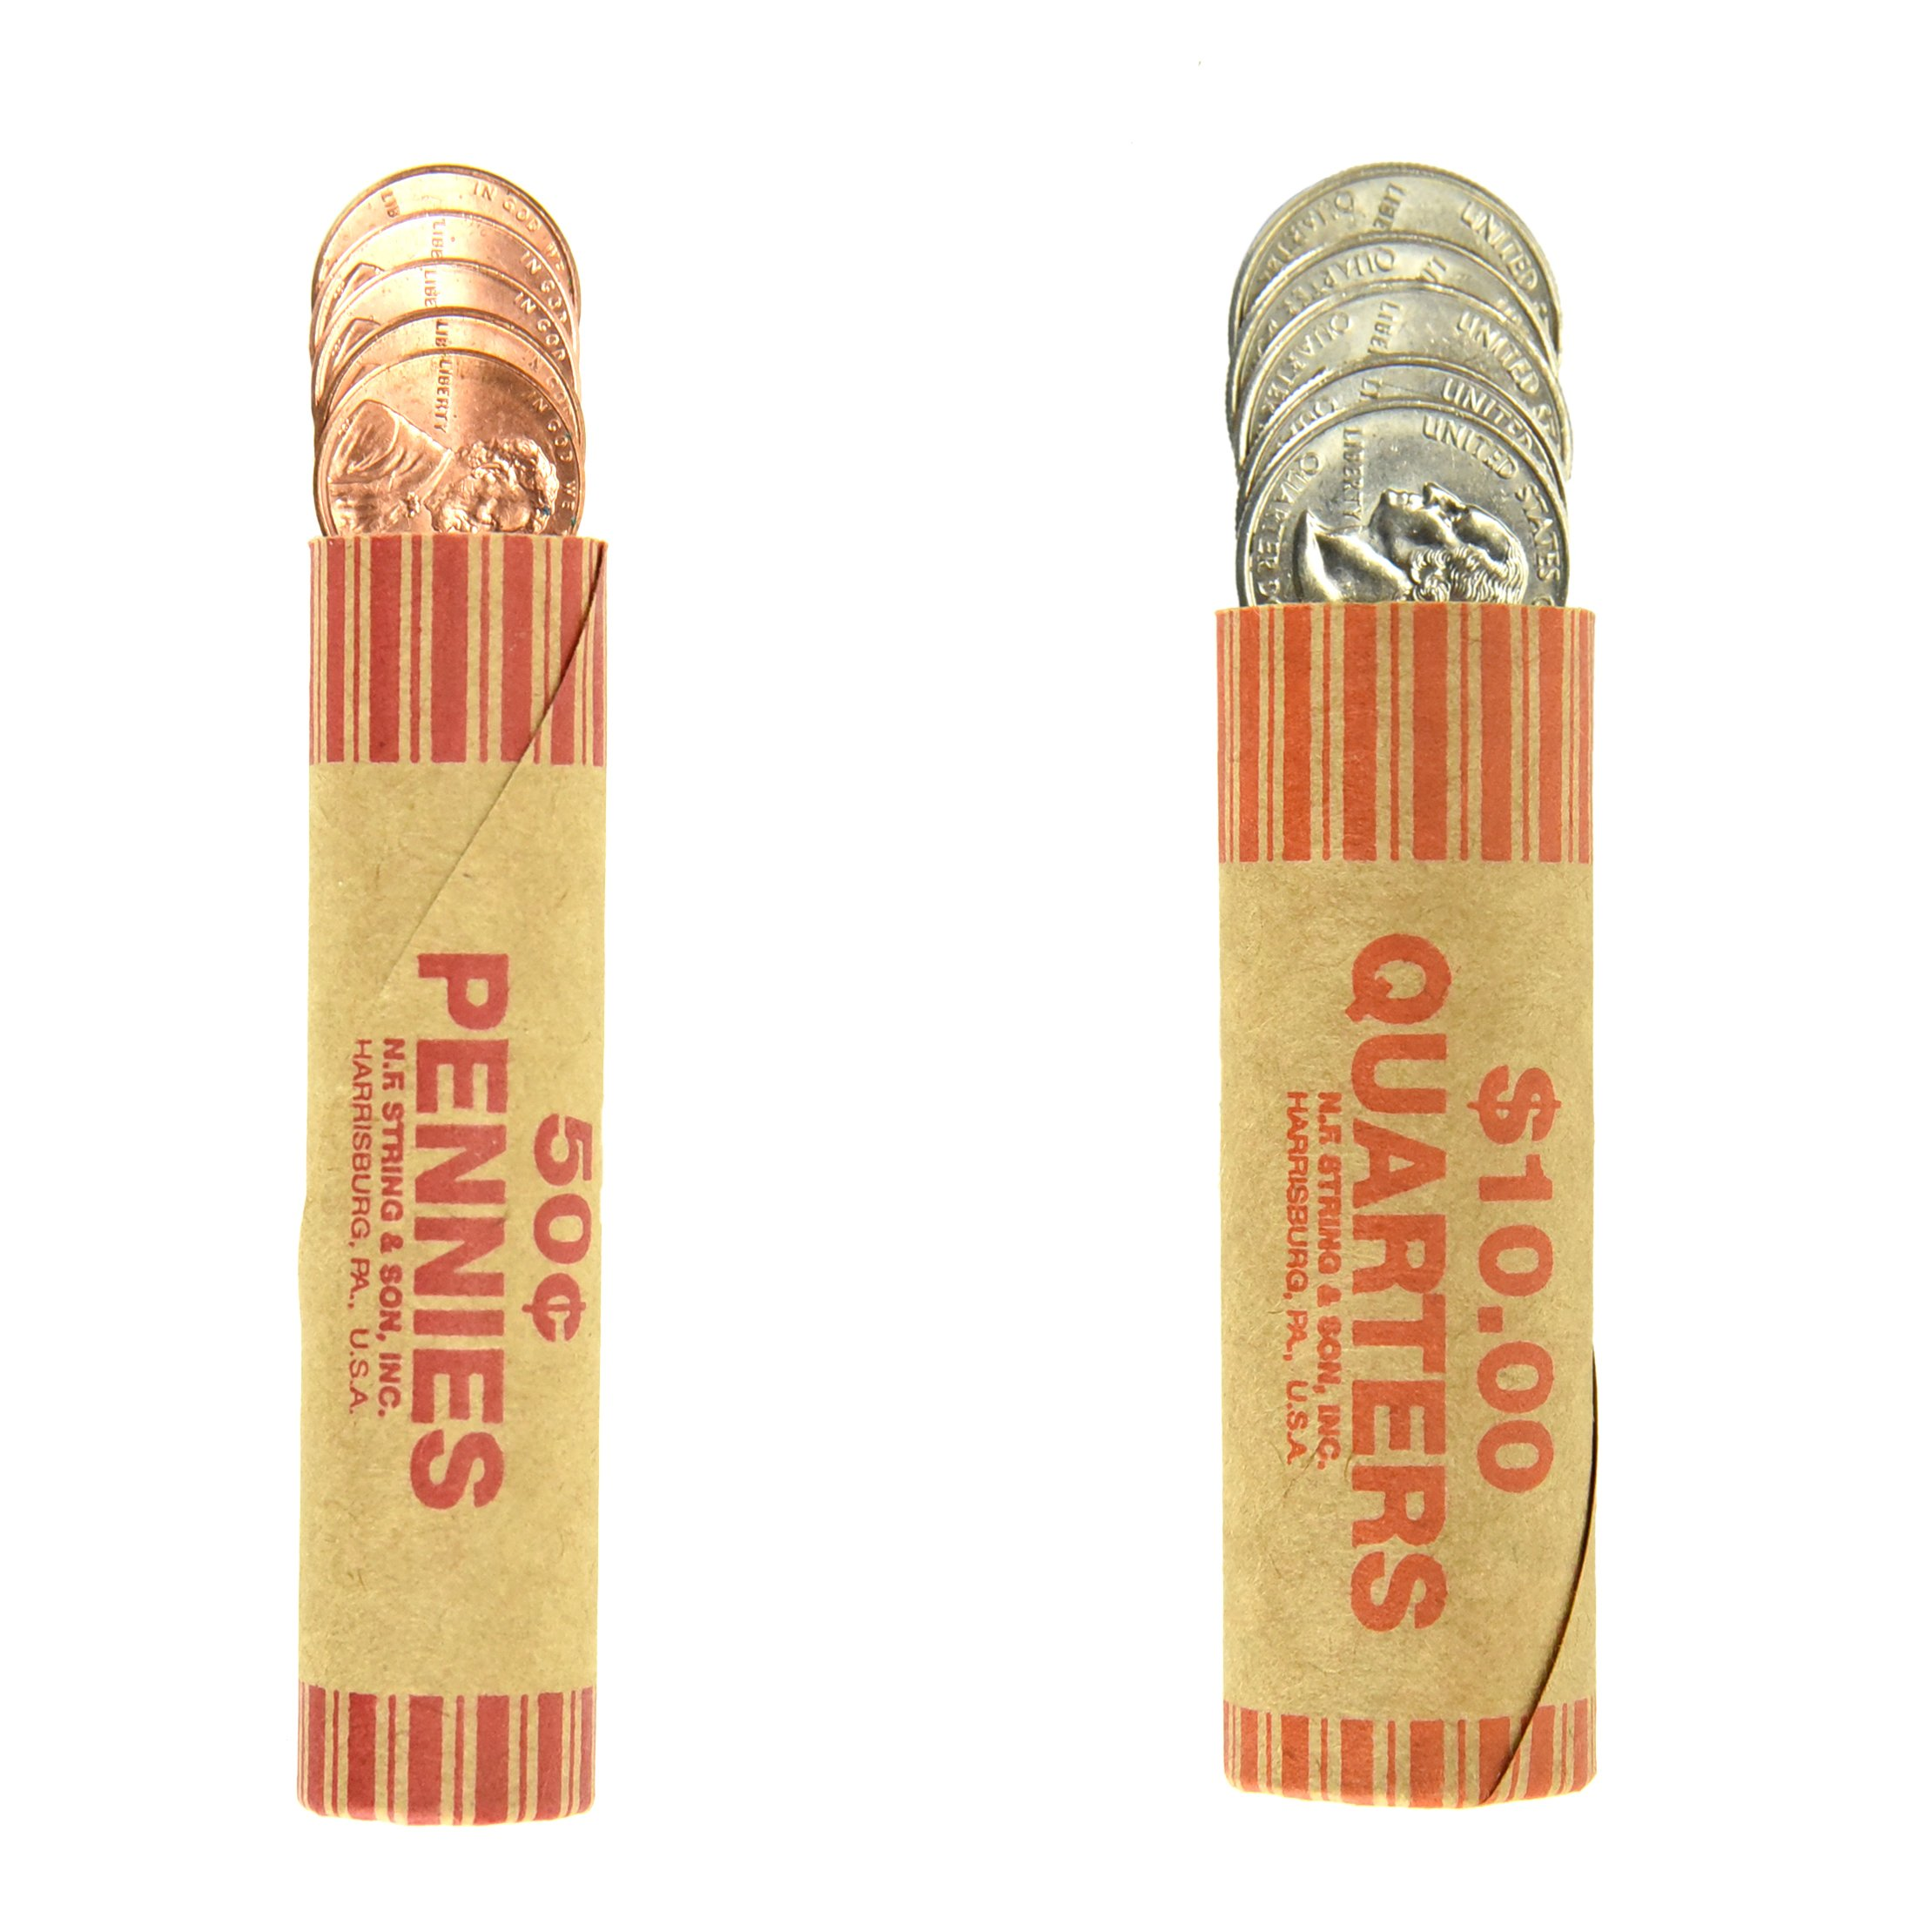 248 Coin Wrappers Made in USA - Set of Preformed Paper Tubes - 124 Quarters and 124 Pennies